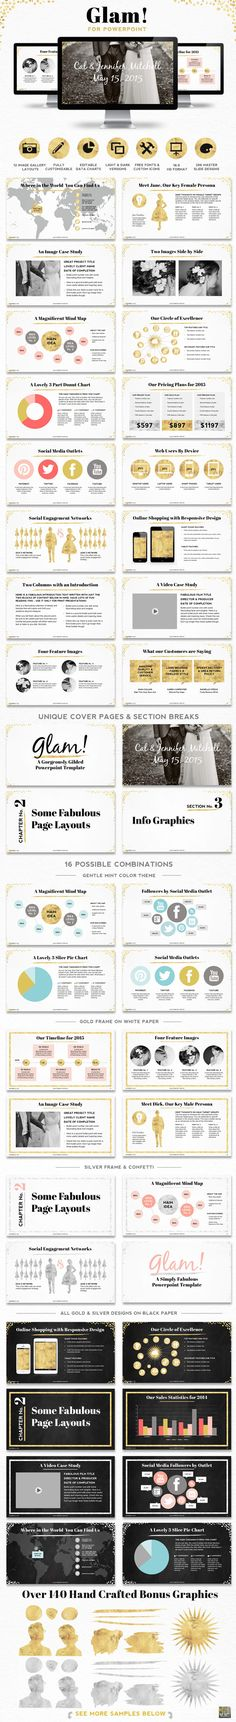 Glam! Powerpoint Presentation Template With 296 hand styled, high-definition master slides, this collection of PPT templates have been specifically designed with an imperfectly cut gold leaf style – complete with rough edges, custom graphics and lots of personality – all updated for contemporary information about social media, digital content and user statistics.